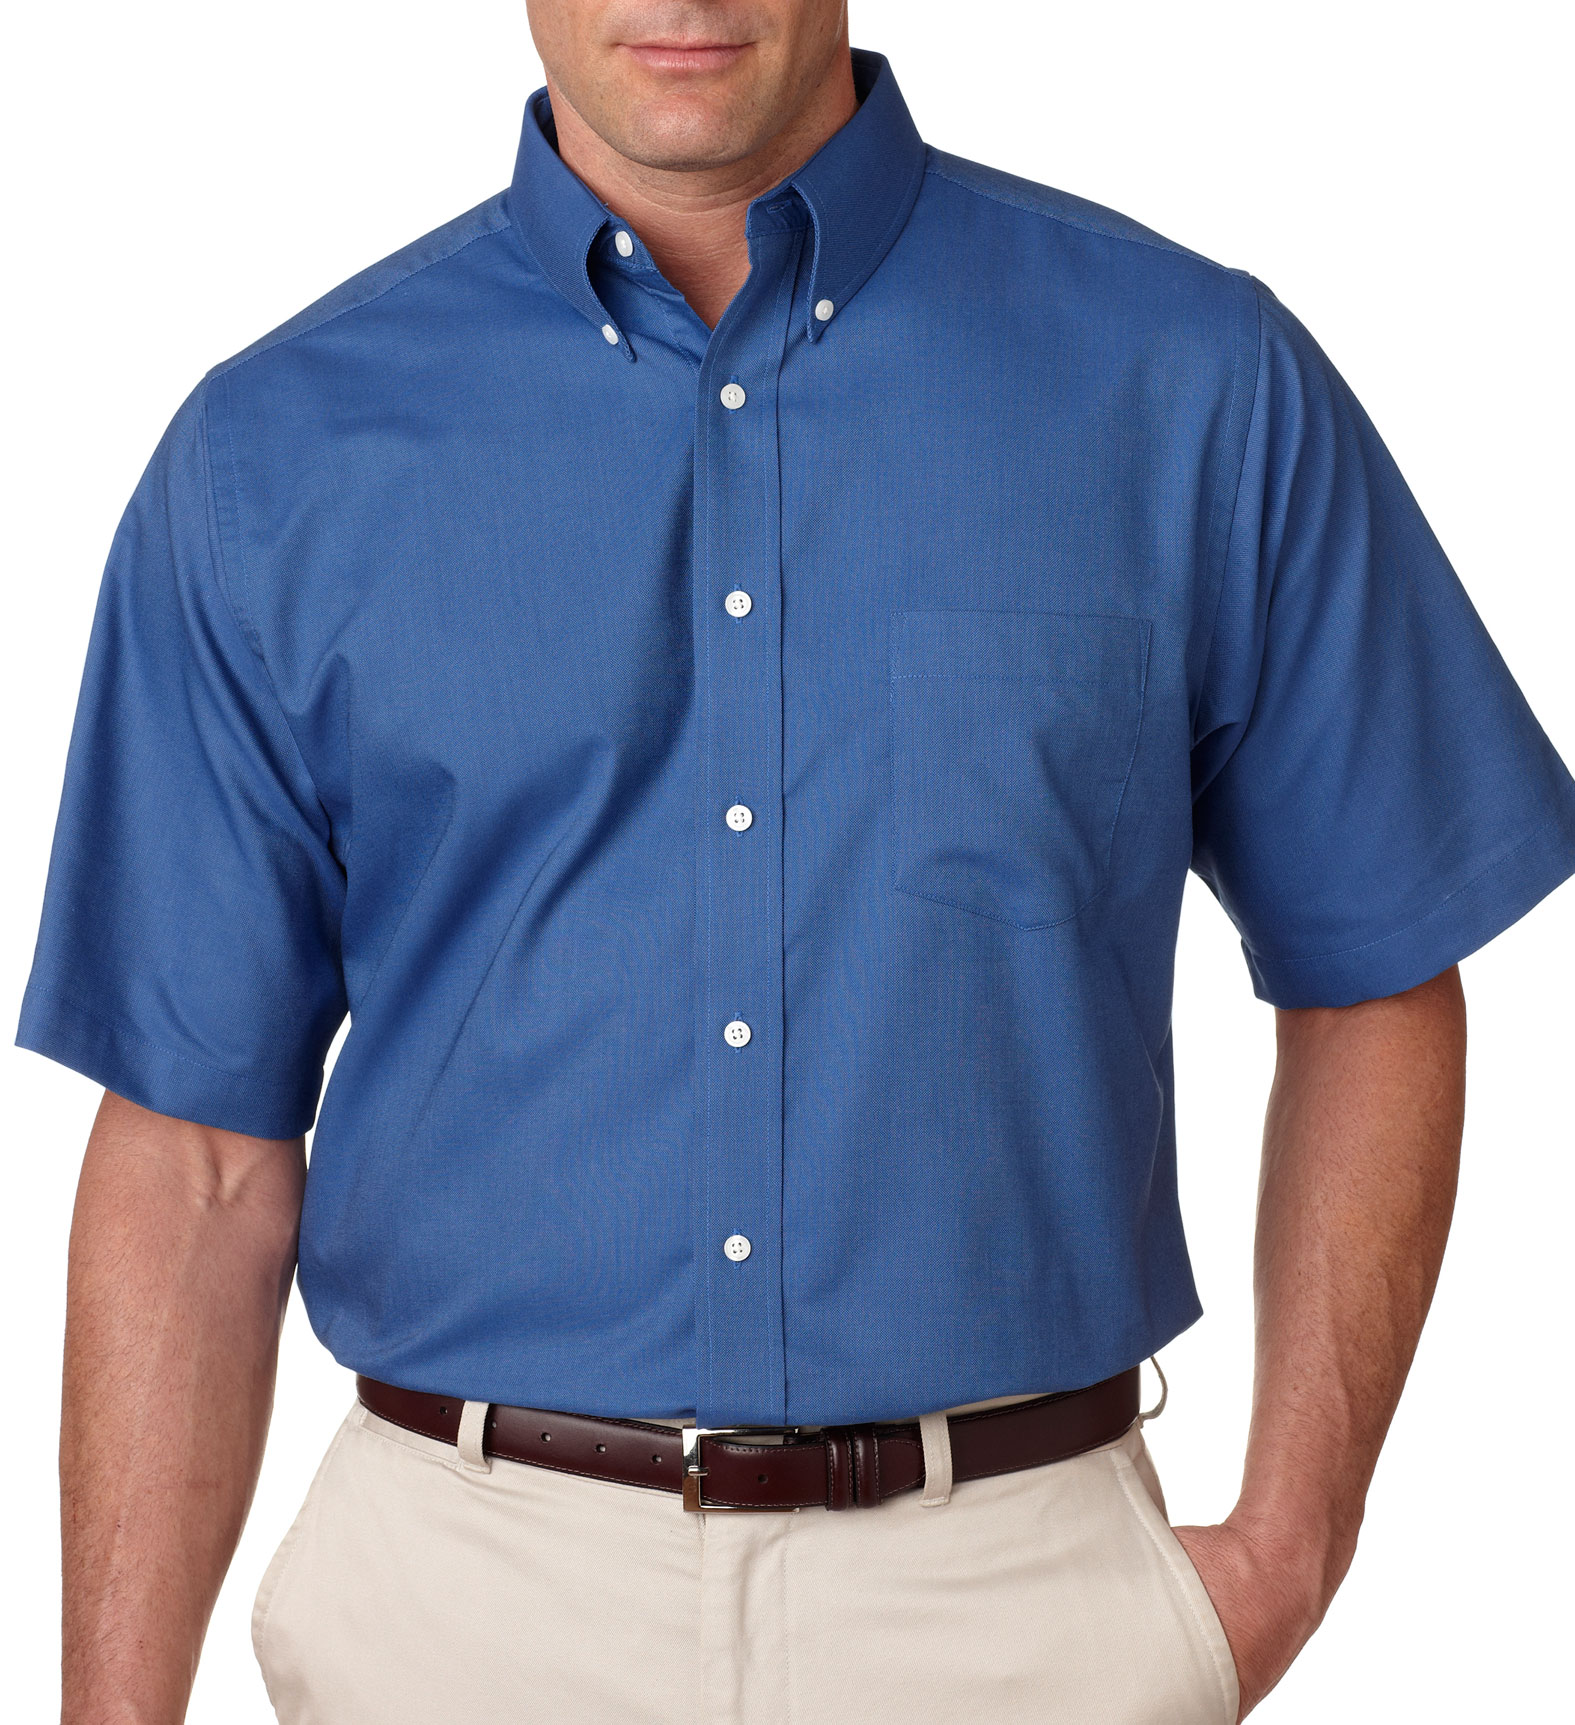 UltraClub Short Sleeve Oxford Dress Shirt